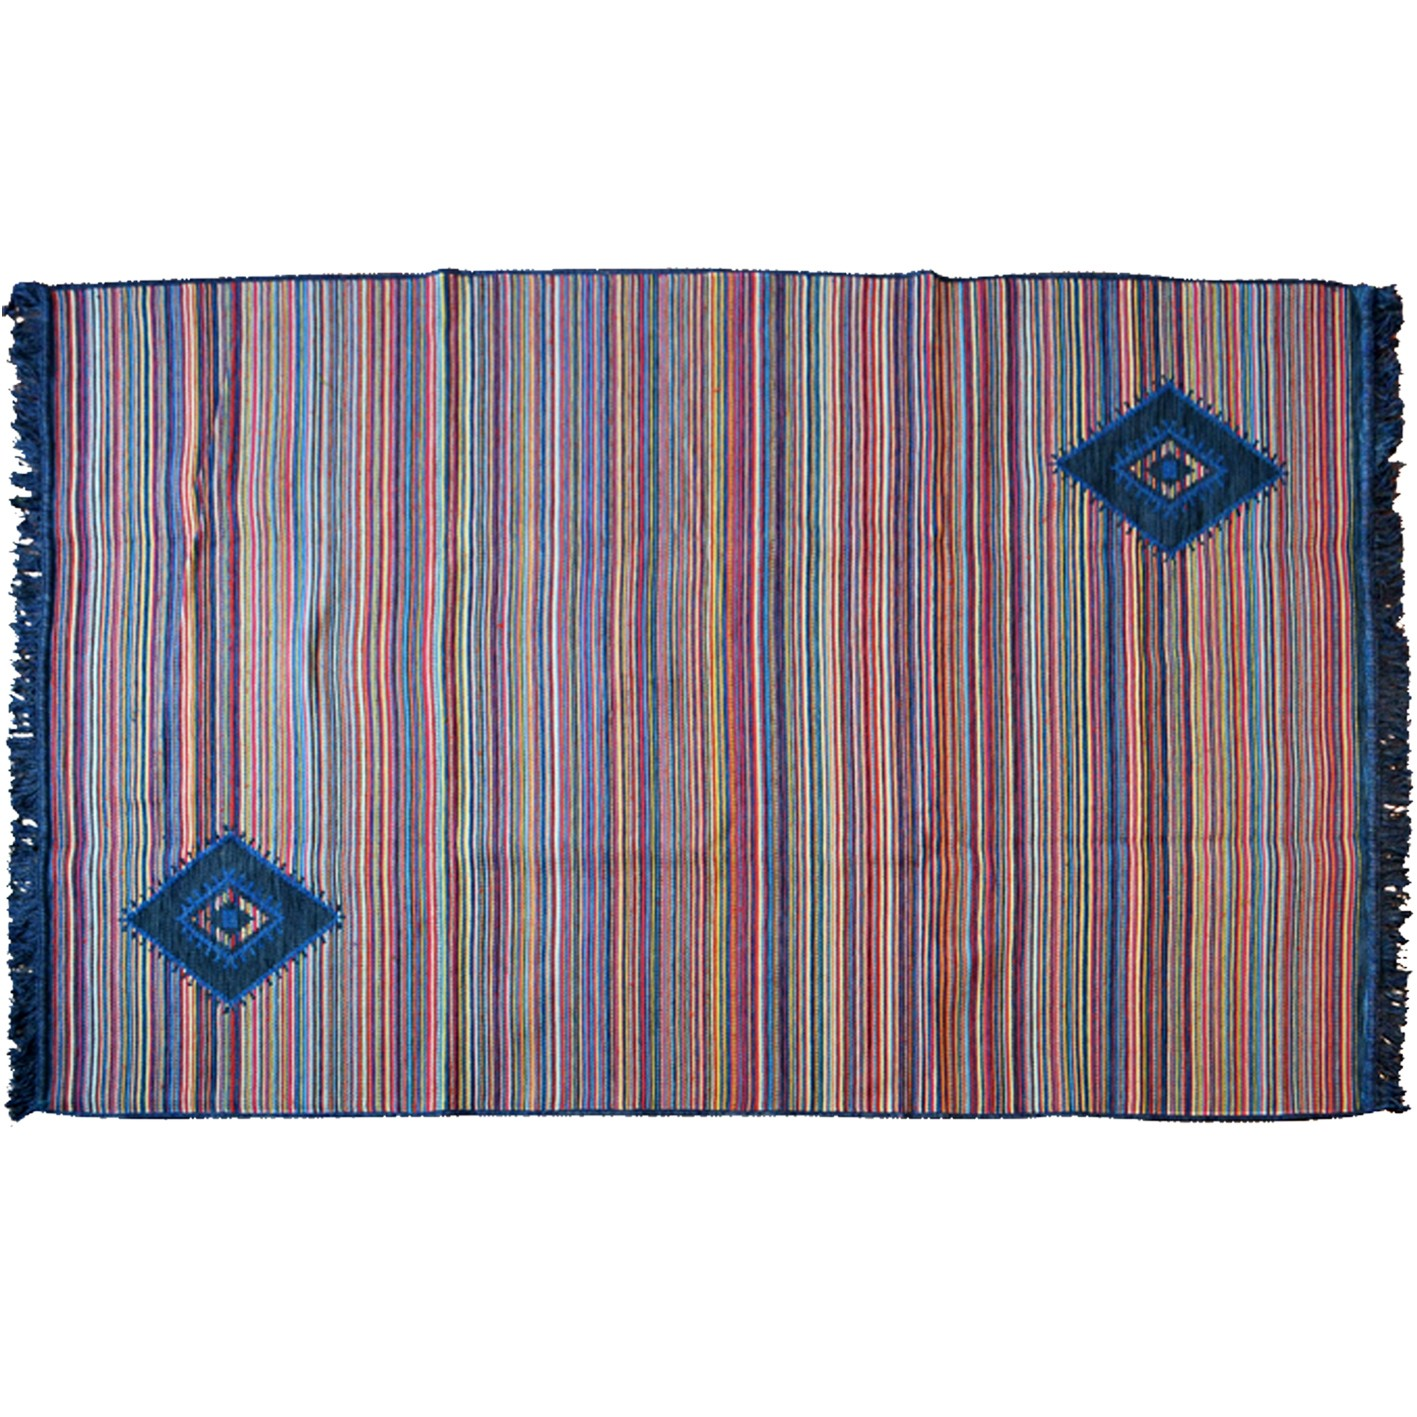 Striped Bohemian Rug Blue and Multi